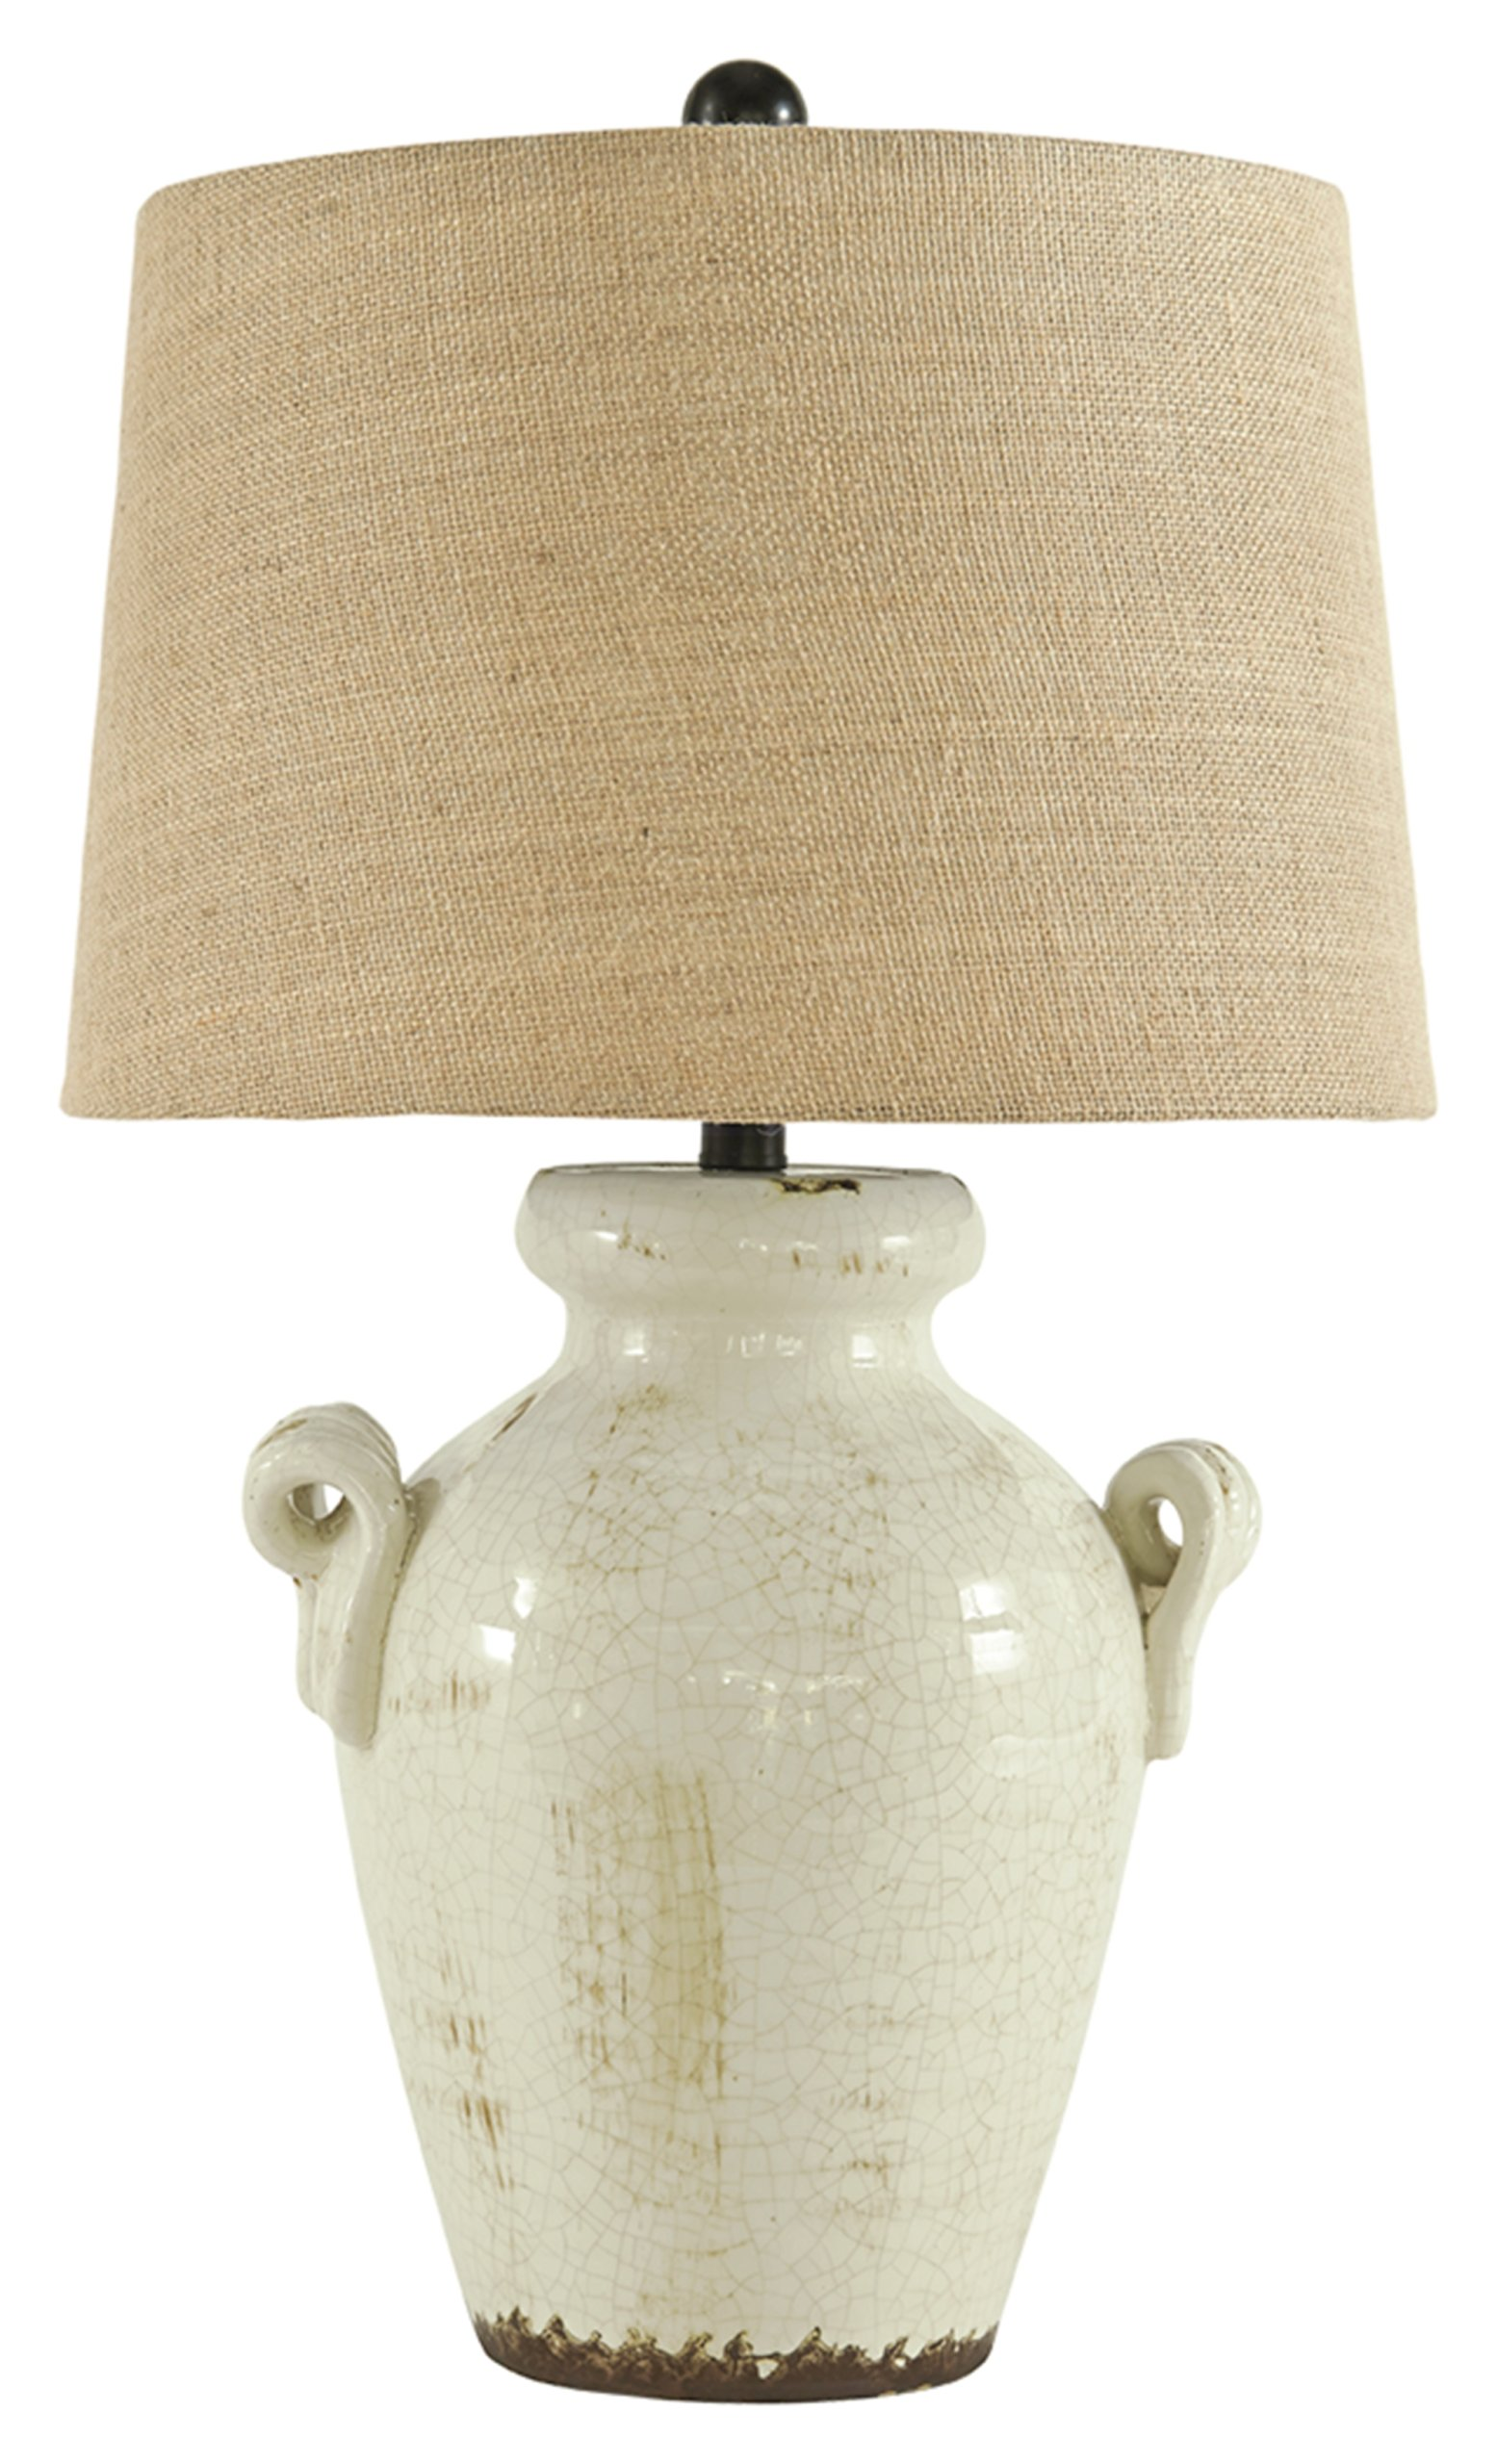 Ashley Furniture Signature Design -  Emelda Farmhouse Ceramic Table Lamp, Cream